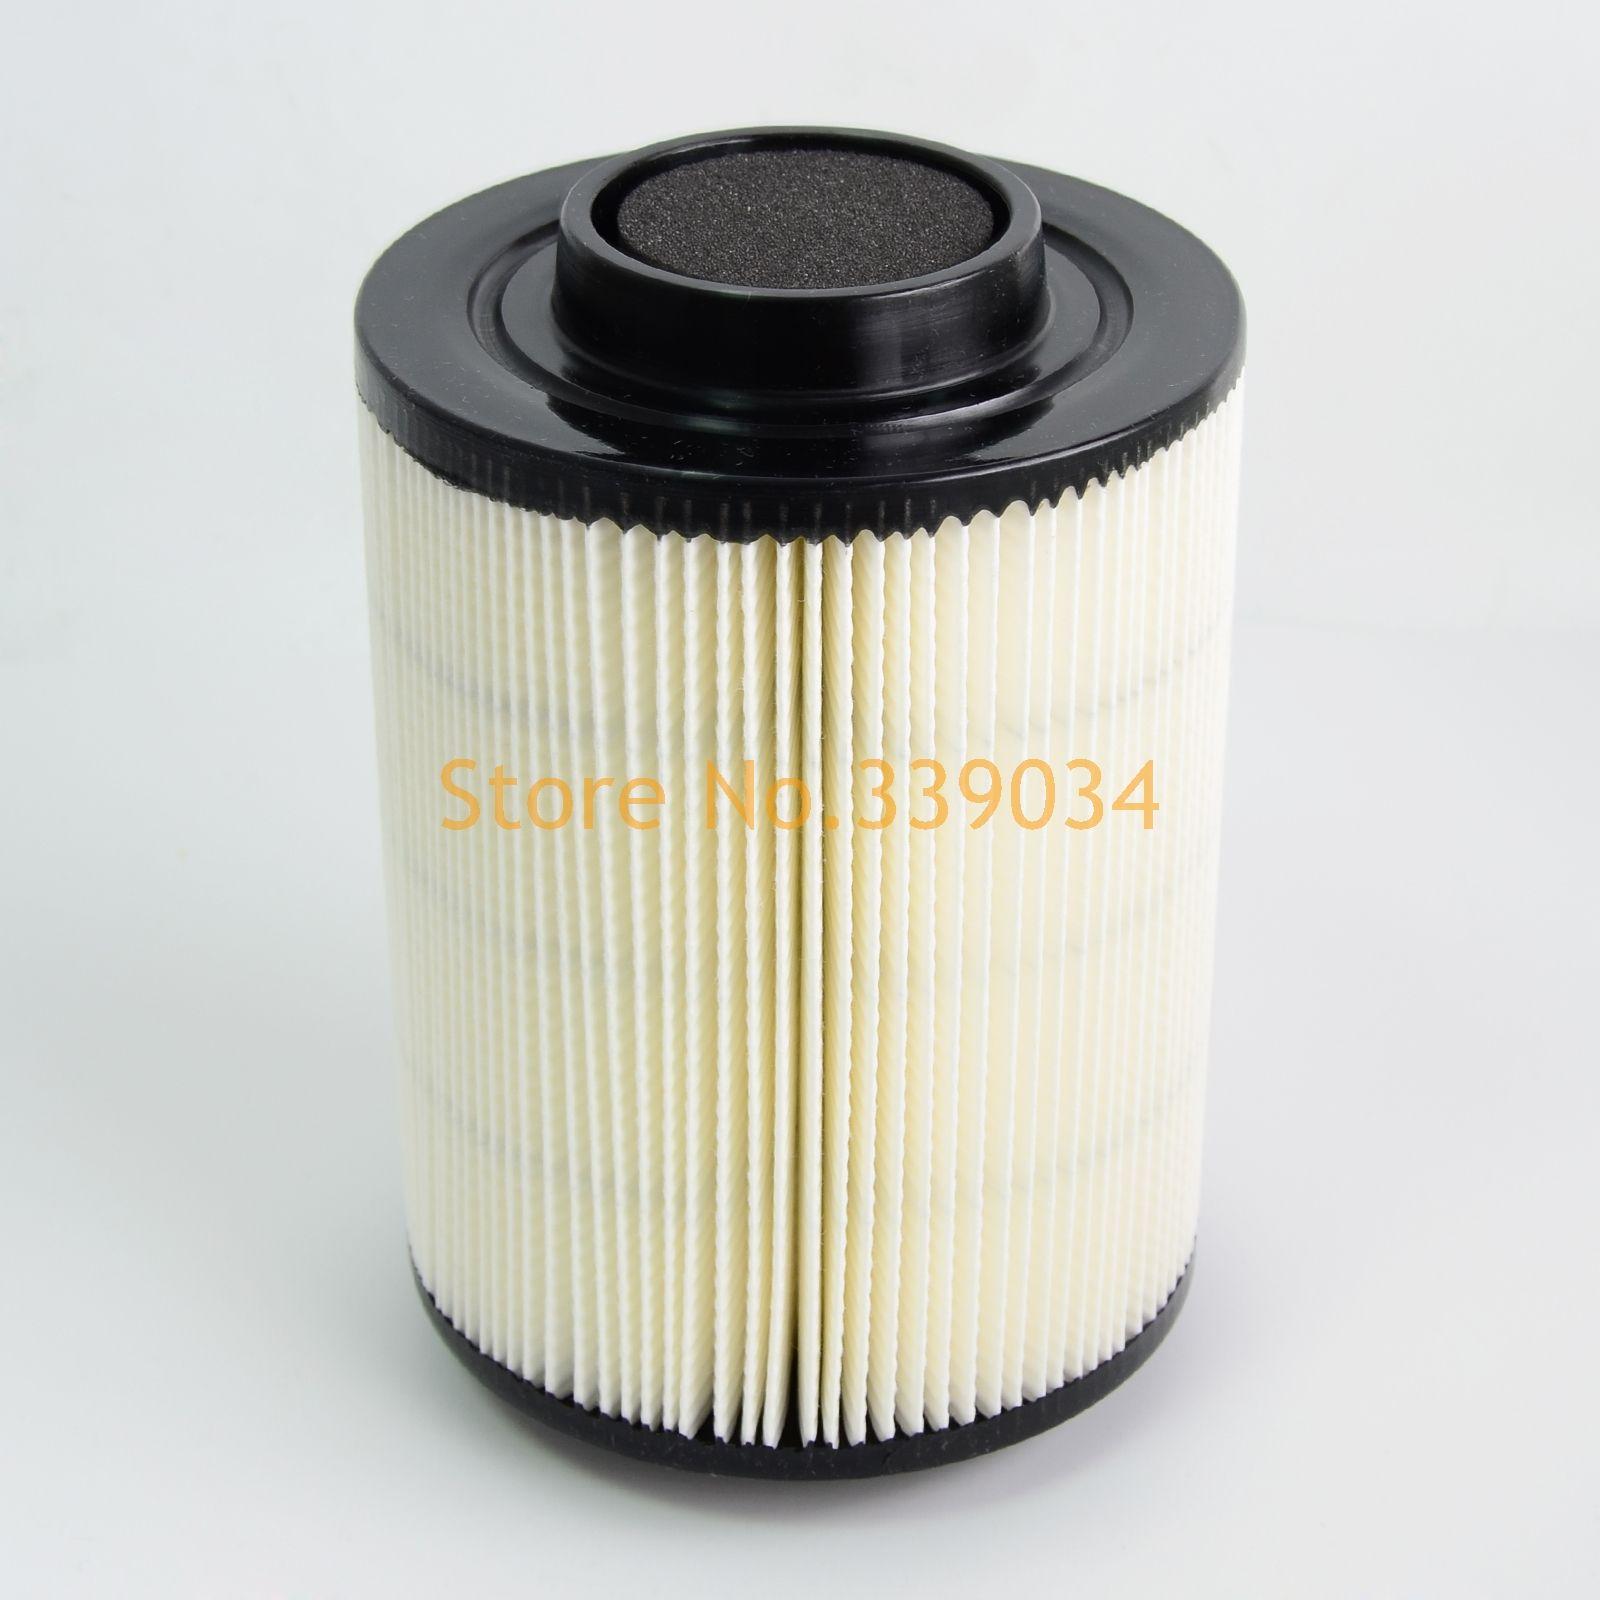 small resolution of check discount motorcycle air filter cleaner for polaris ranger 800 rzr 4 rzr 800 le efi eps 2009 2011 polaris rzr 800